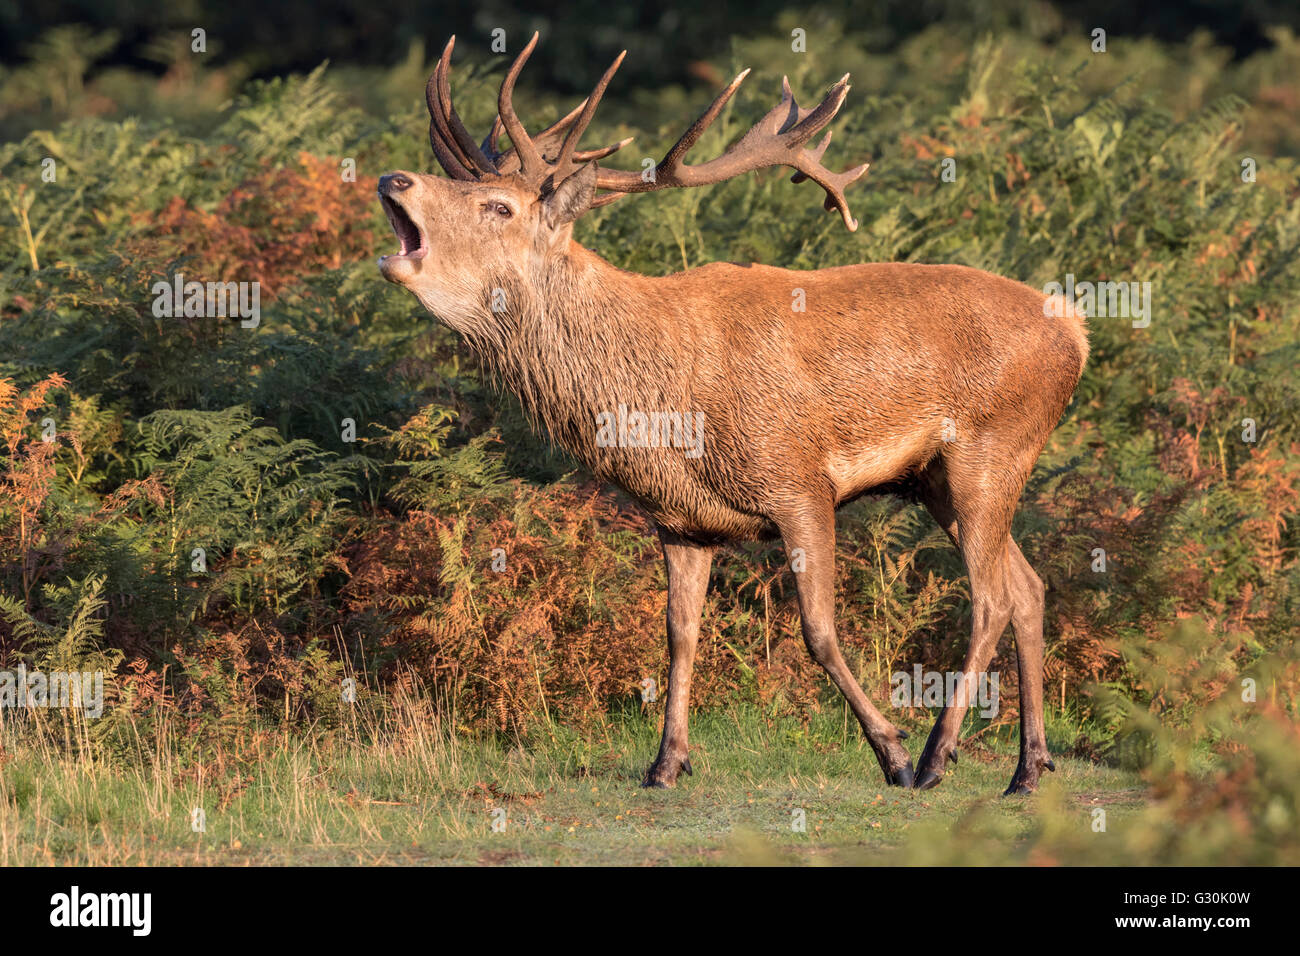 Red Deer Stag bugling - Stock Image